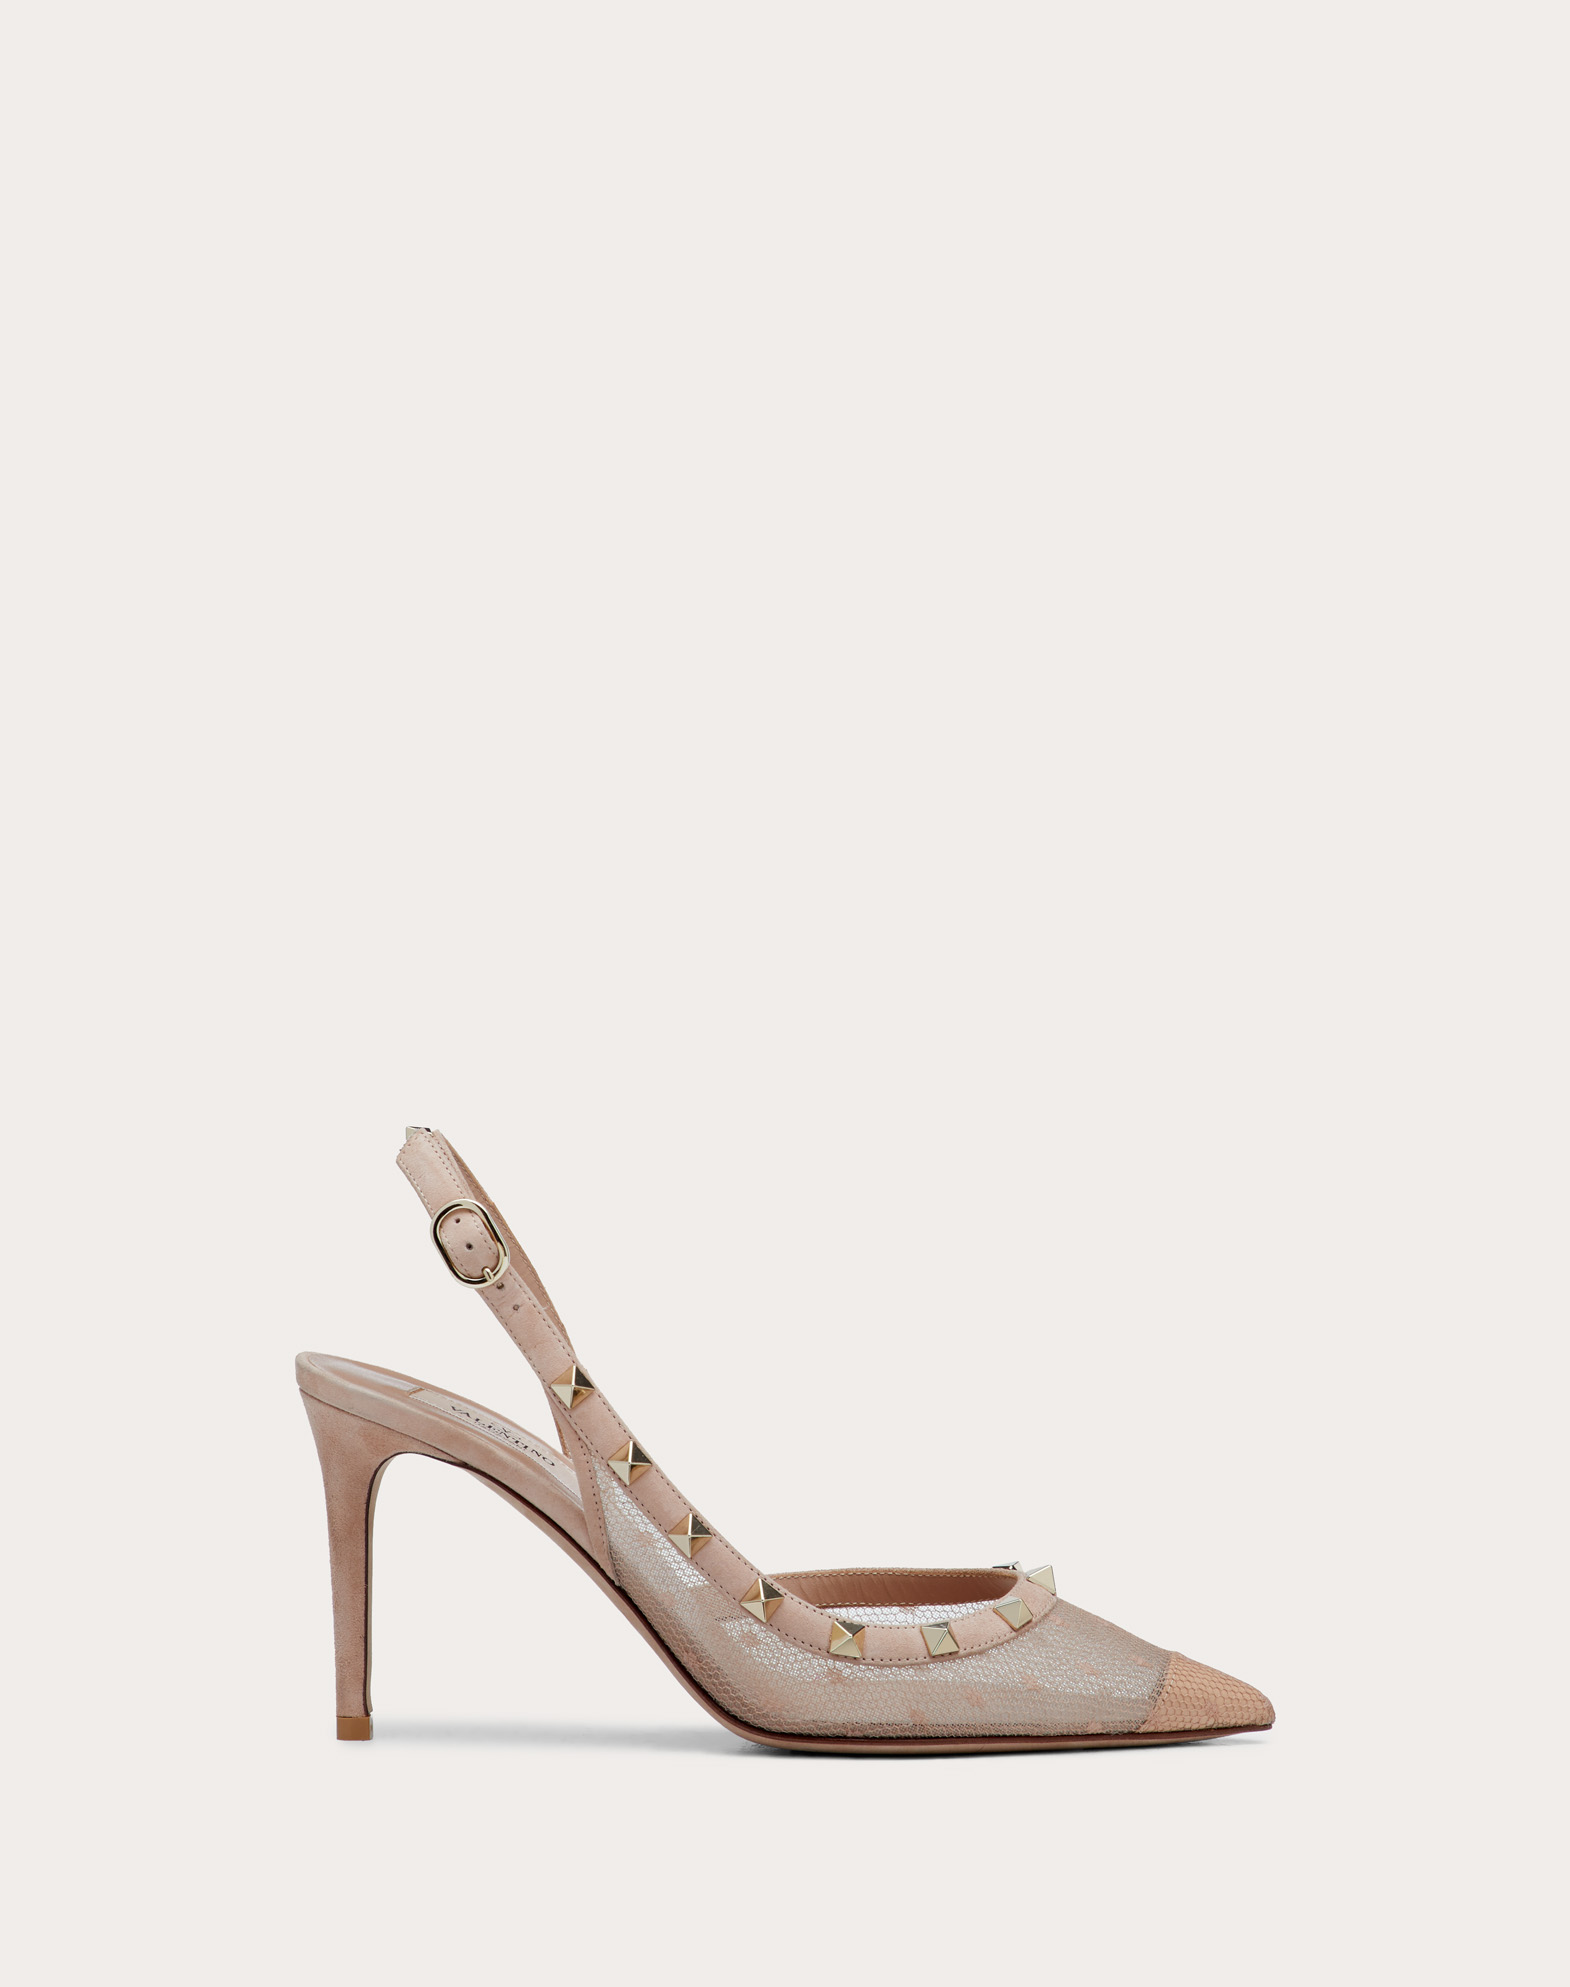 Rockstud Lace Slingback Pump 85 mm